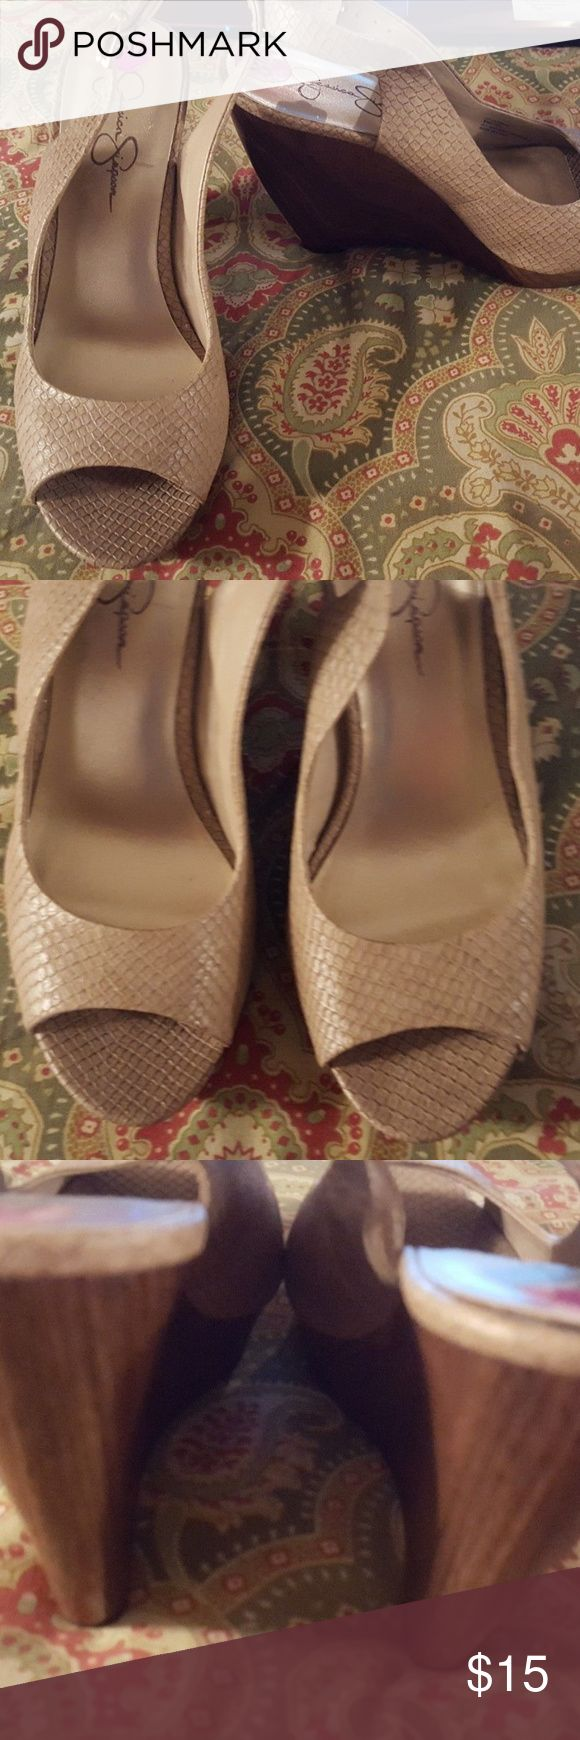 "Jessica Simpson 8.5 38.5 tan wedge sandals heels Shoes are in excellent condition.  Heels measure 4"".  Style is KARMENX.  Shoes are located in a smoke-free home. Jessica Simpson Shoes Sandals"